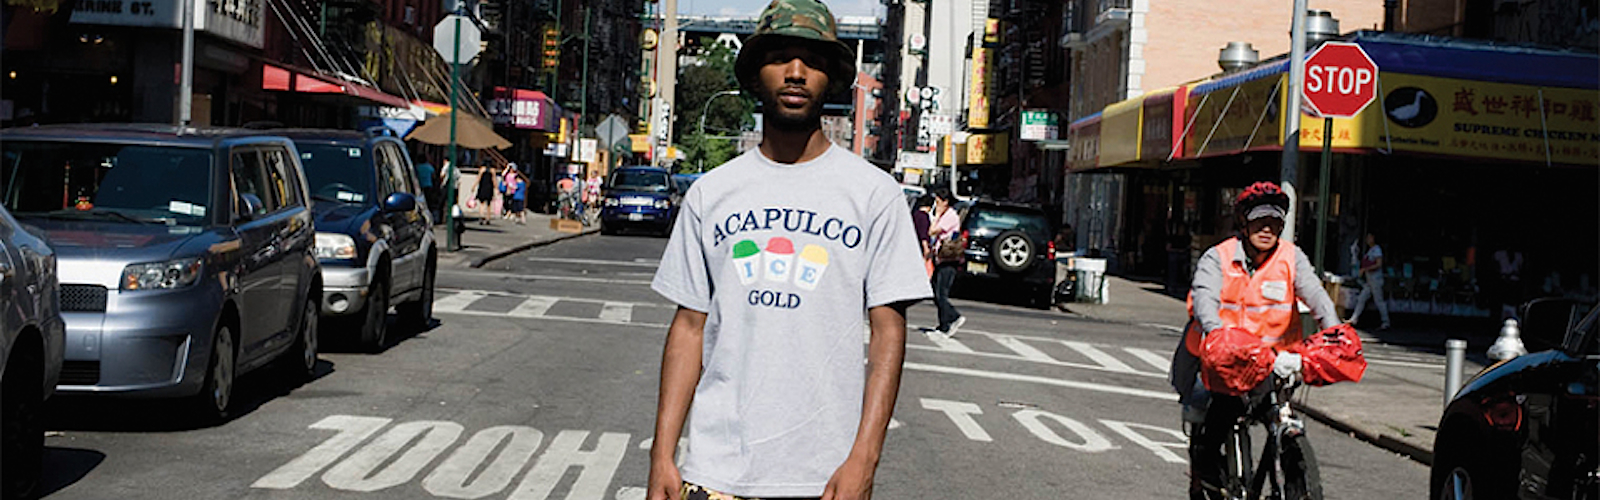 acapulco-gold-summer-2014-lookbook_bb